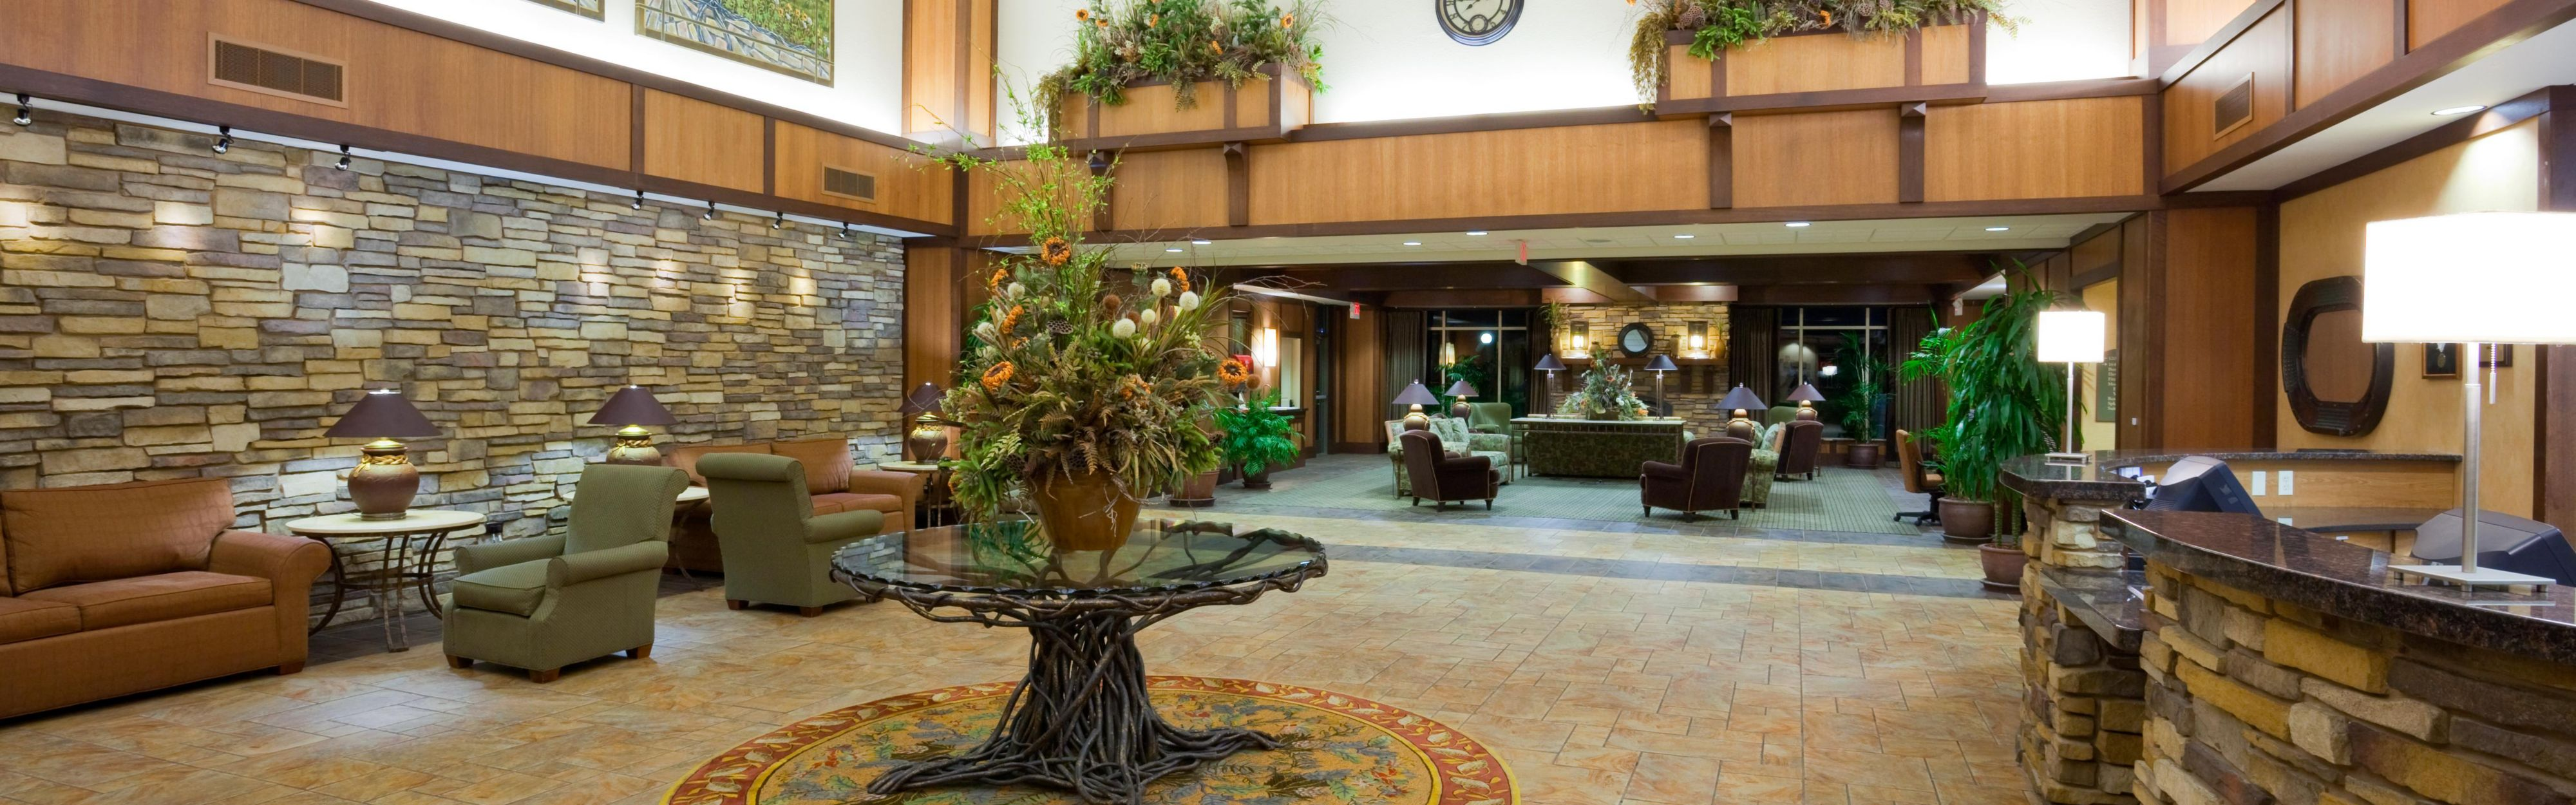 Holiday Inn Stevens Point - Convention Ctr image 0